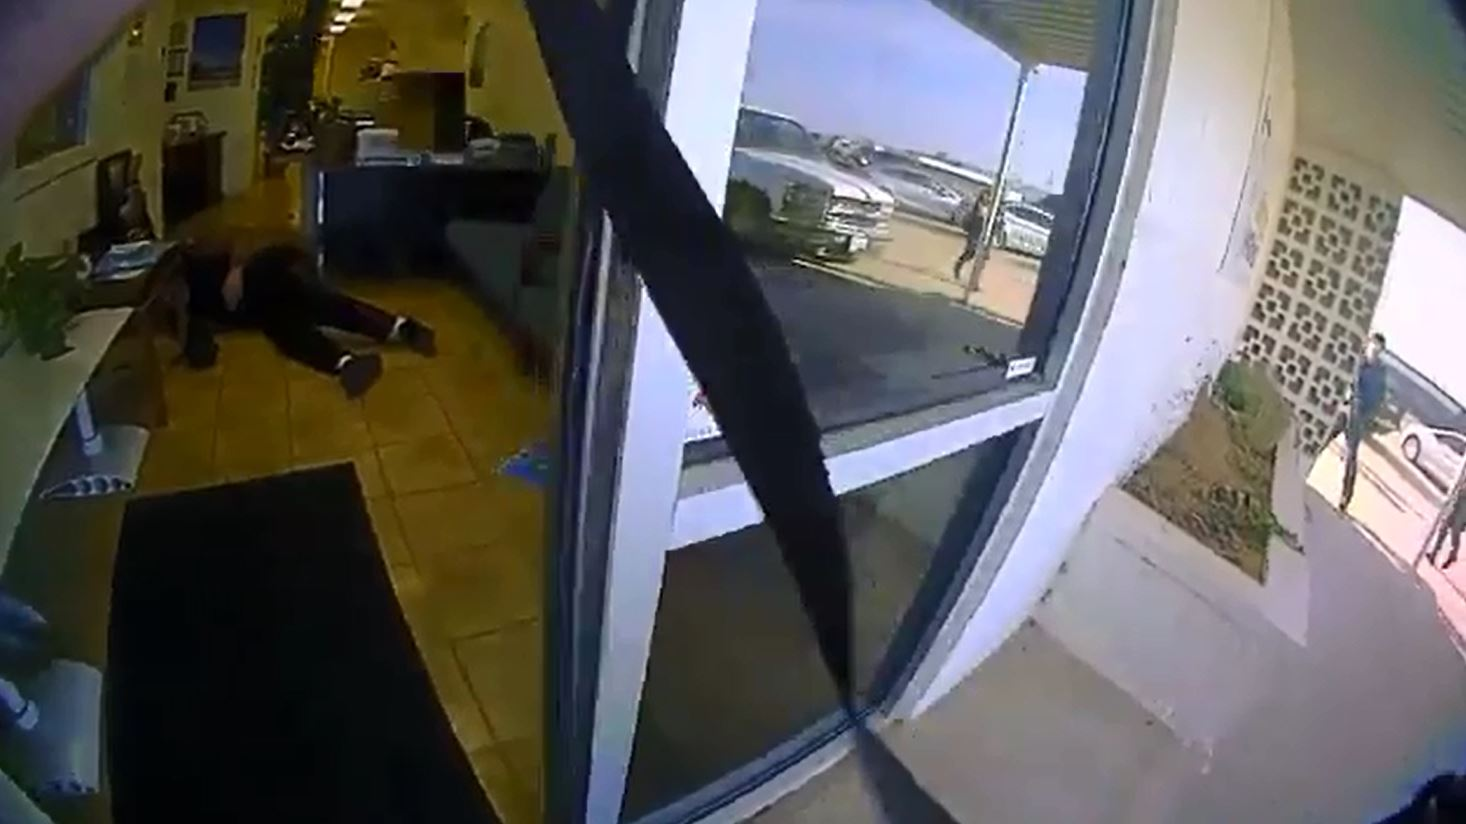 Body camera footage shows the moments police entered a Norman business during an active shooter situation Jan. 11. (Norman Police Department)<p></p>